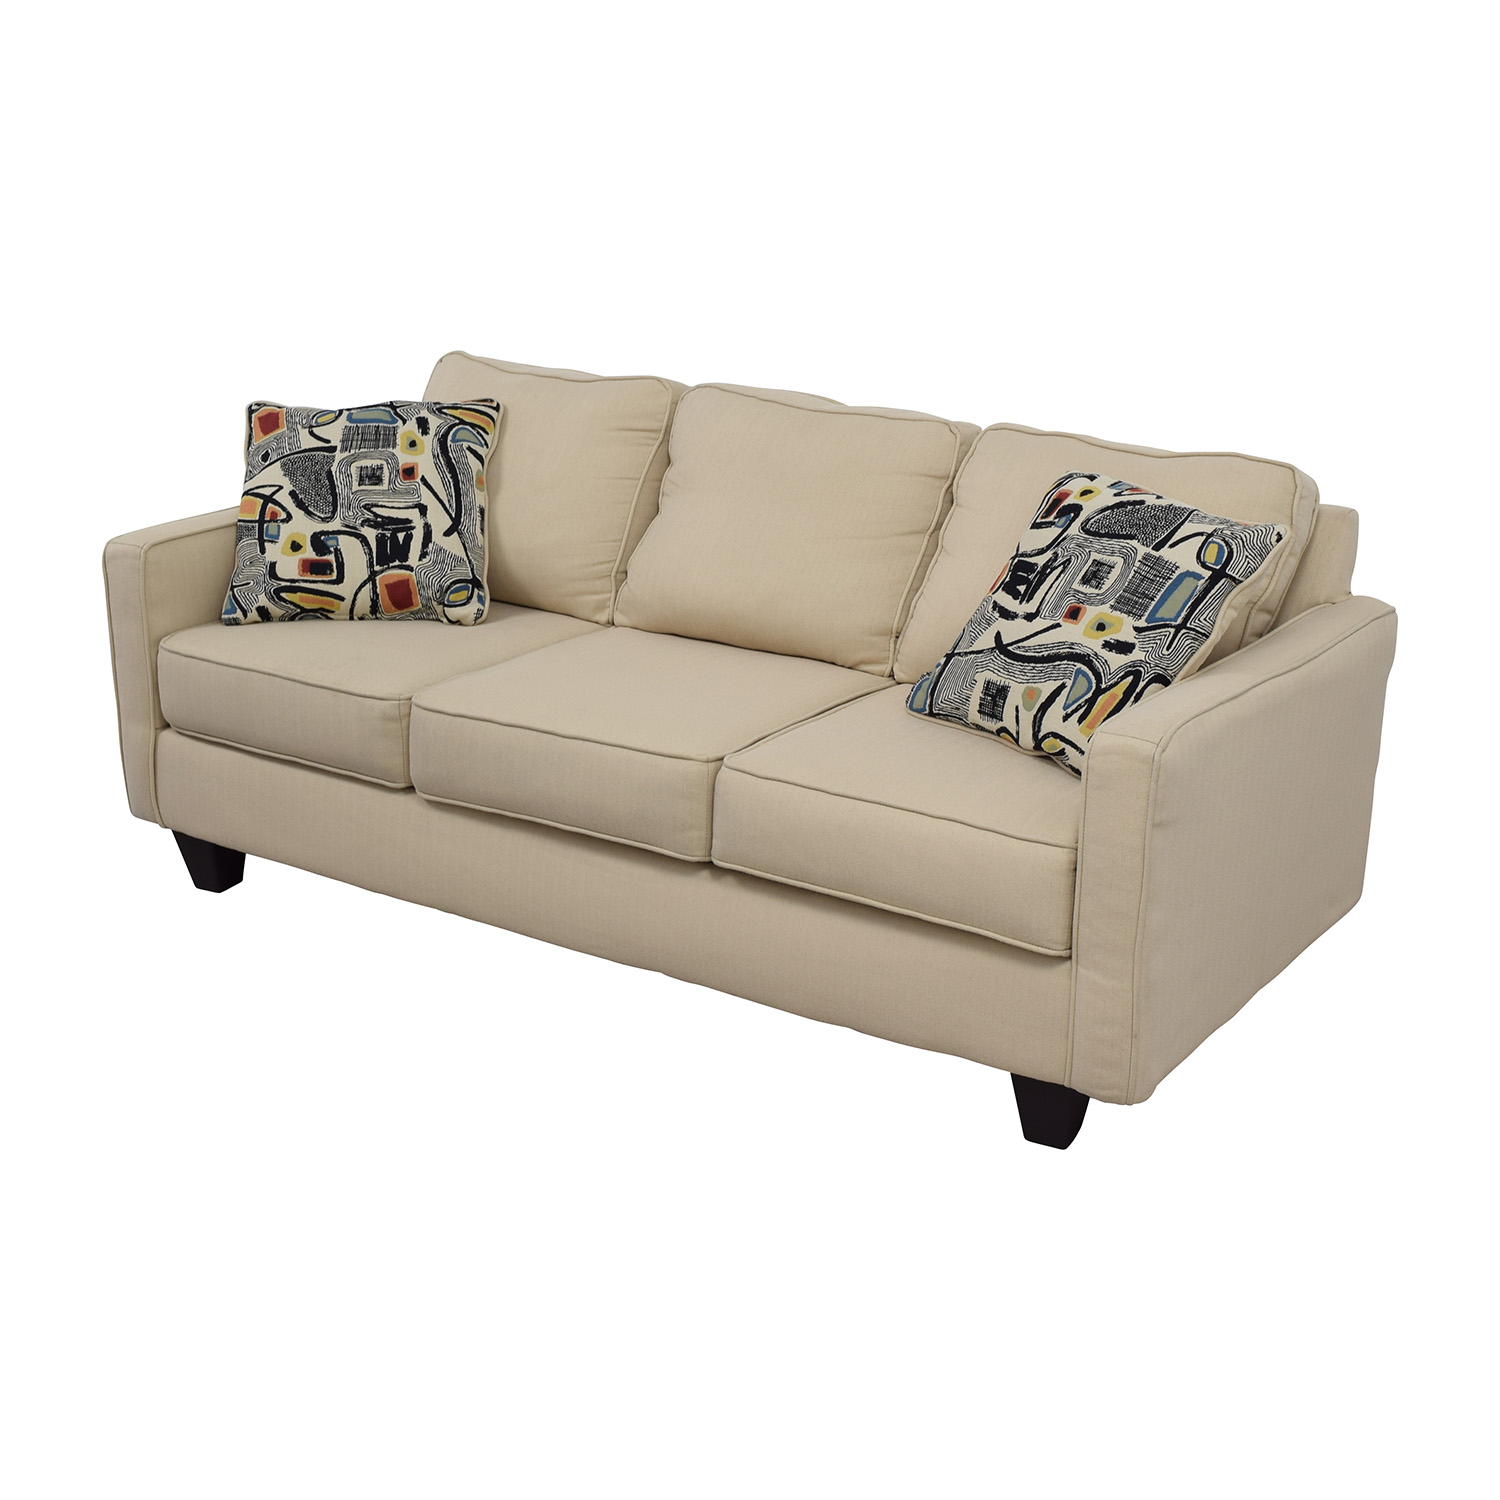 52% OFF - Wayfair Wayfair AllModern Three Cushion Beige Couch with Two Pillows / Sofas